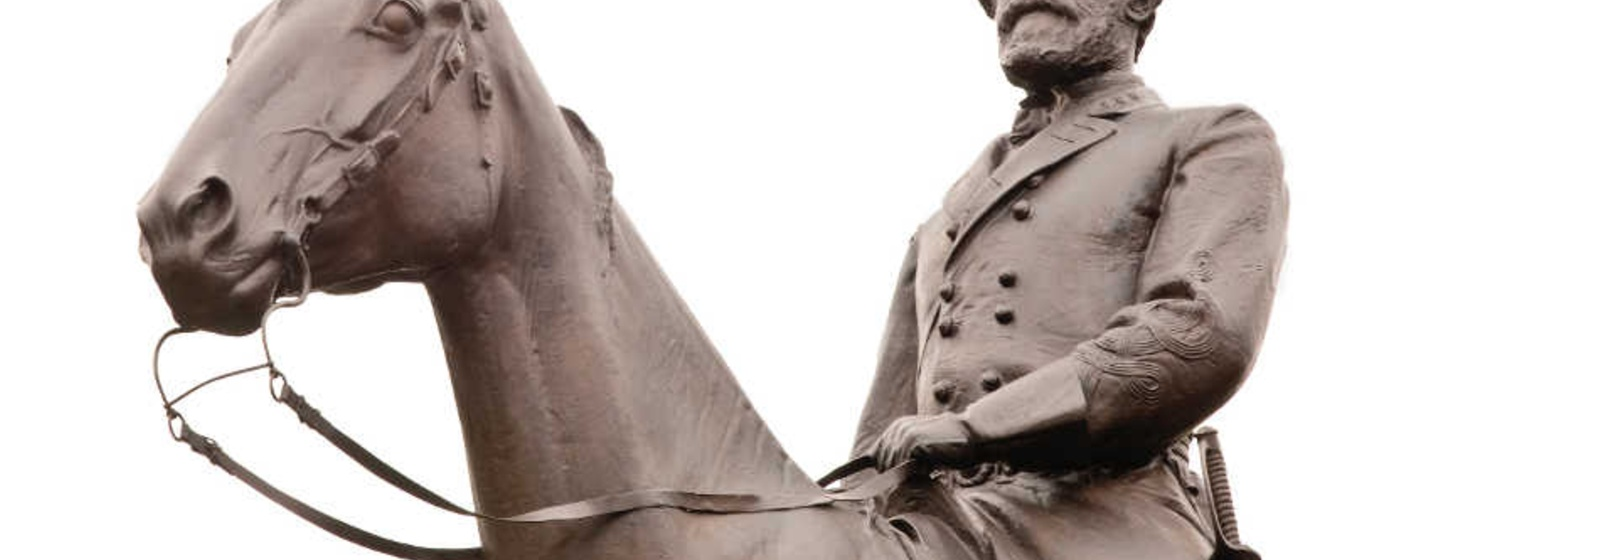 More Than Half Of Americans Oppose Removing Confederate Statues, WaPo Poll Finds